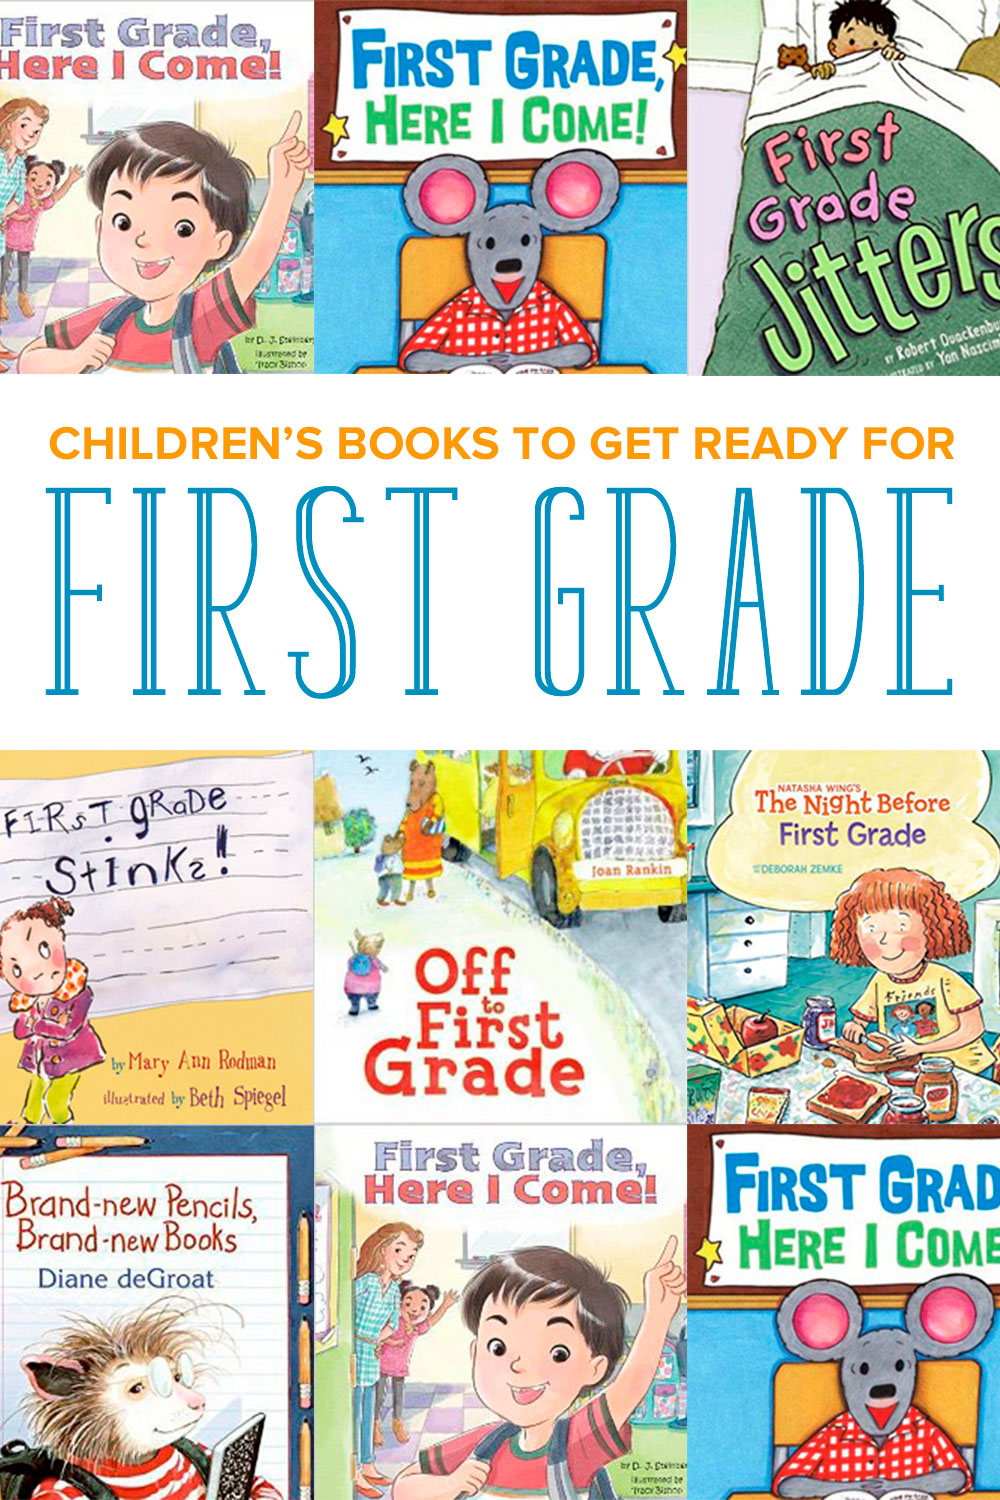 A selection of the best children's books all about first grade. Reading about first grade will help your kindergarten student prepare for class and meet the teachers. Read these picture books with your child as you get ready to go back to school! Even includes a FREE Read Aloud Book List with hundreds of favorite selections to read with your kids! #firstgrade #childrensbooks